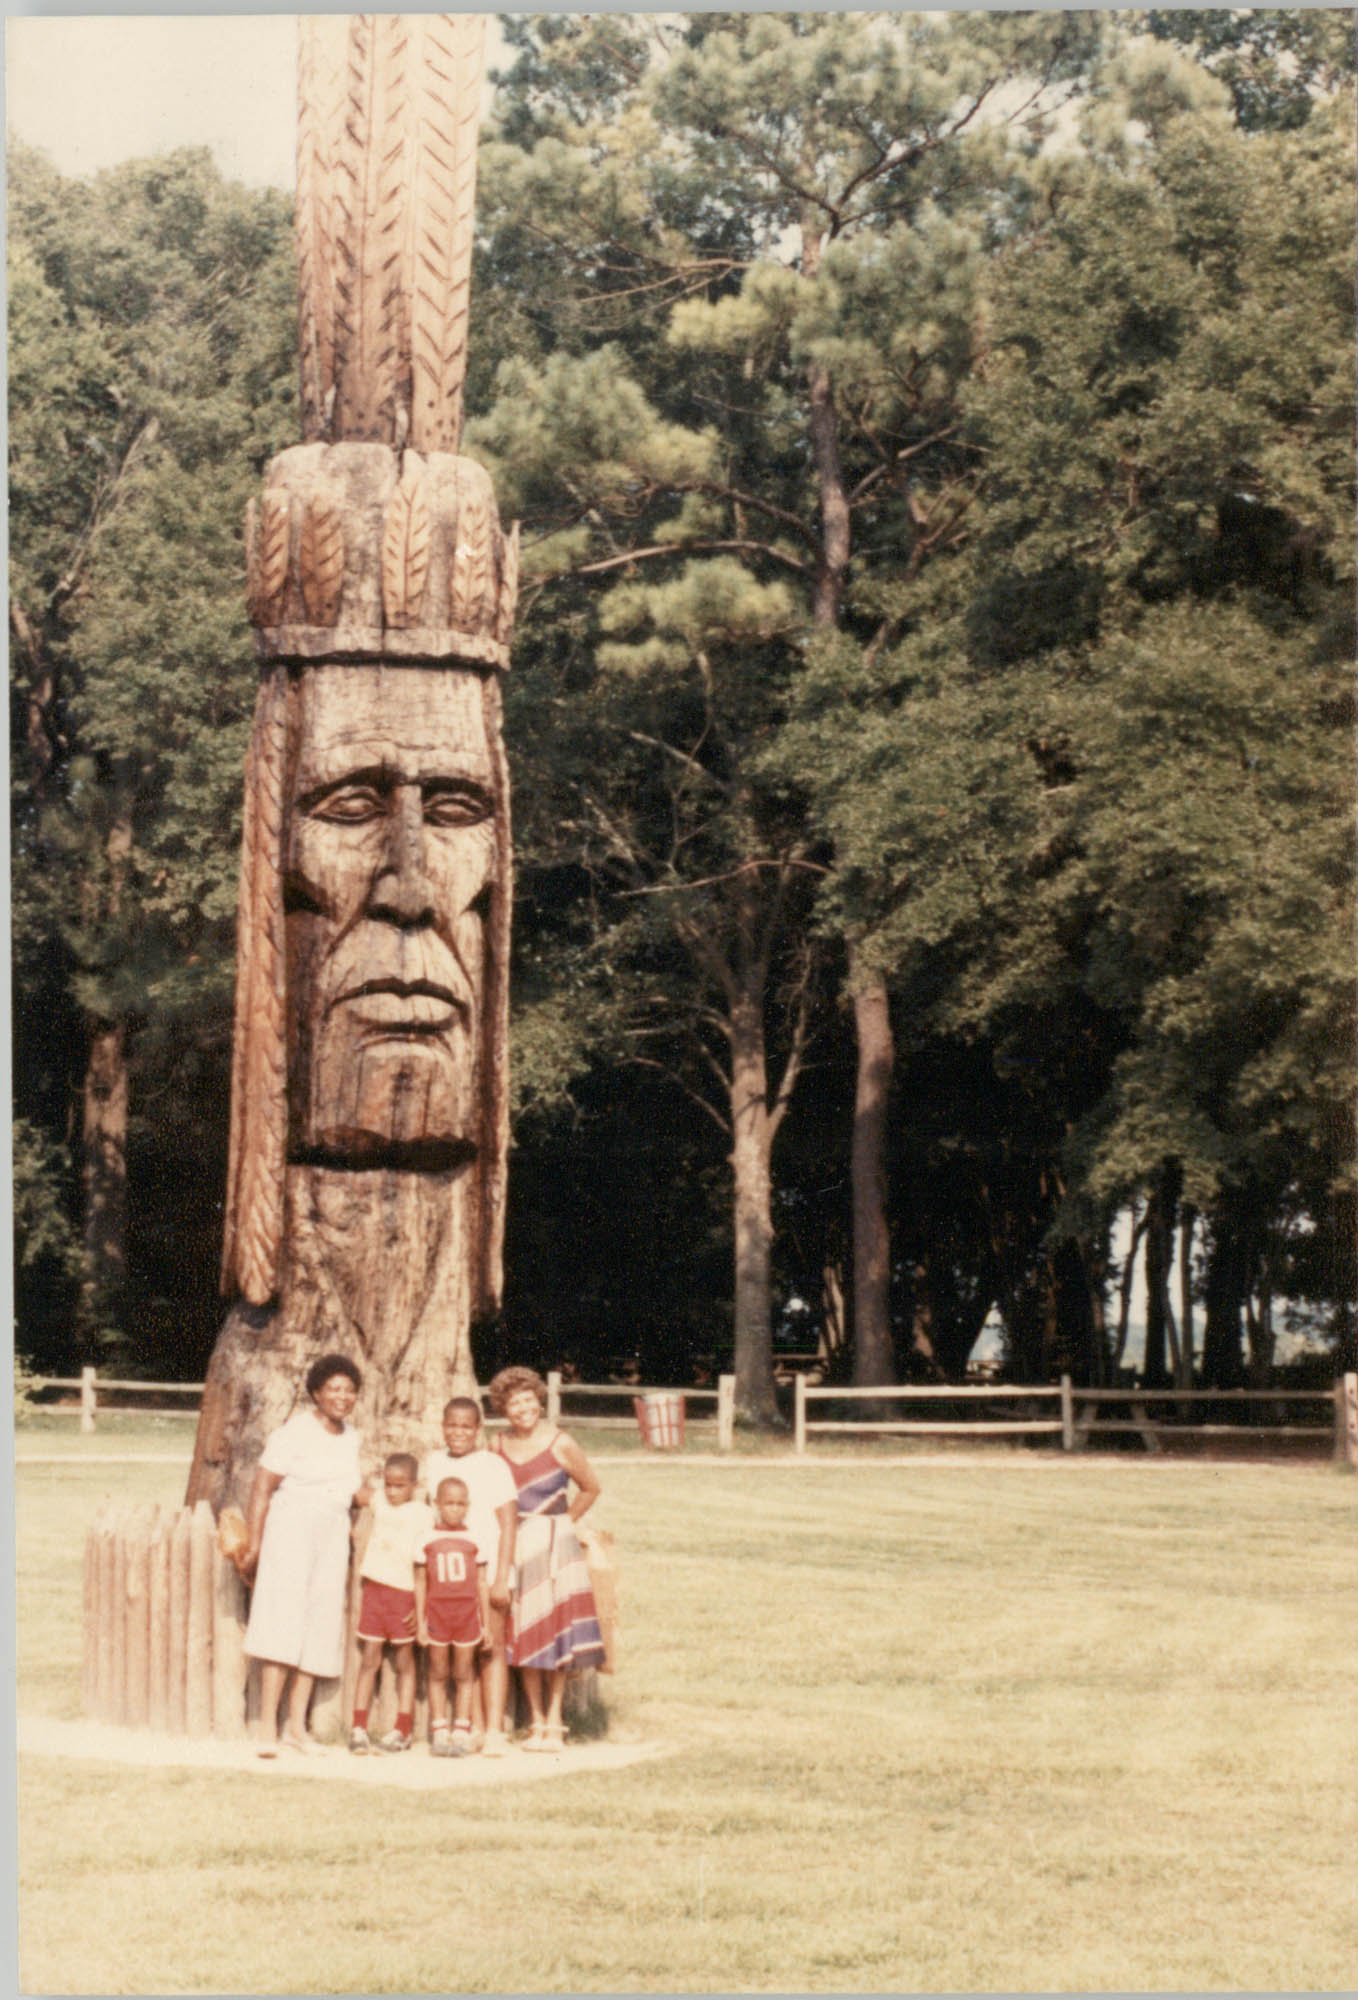 Photograph of a Family Standing Beside a Wooden Sculpture